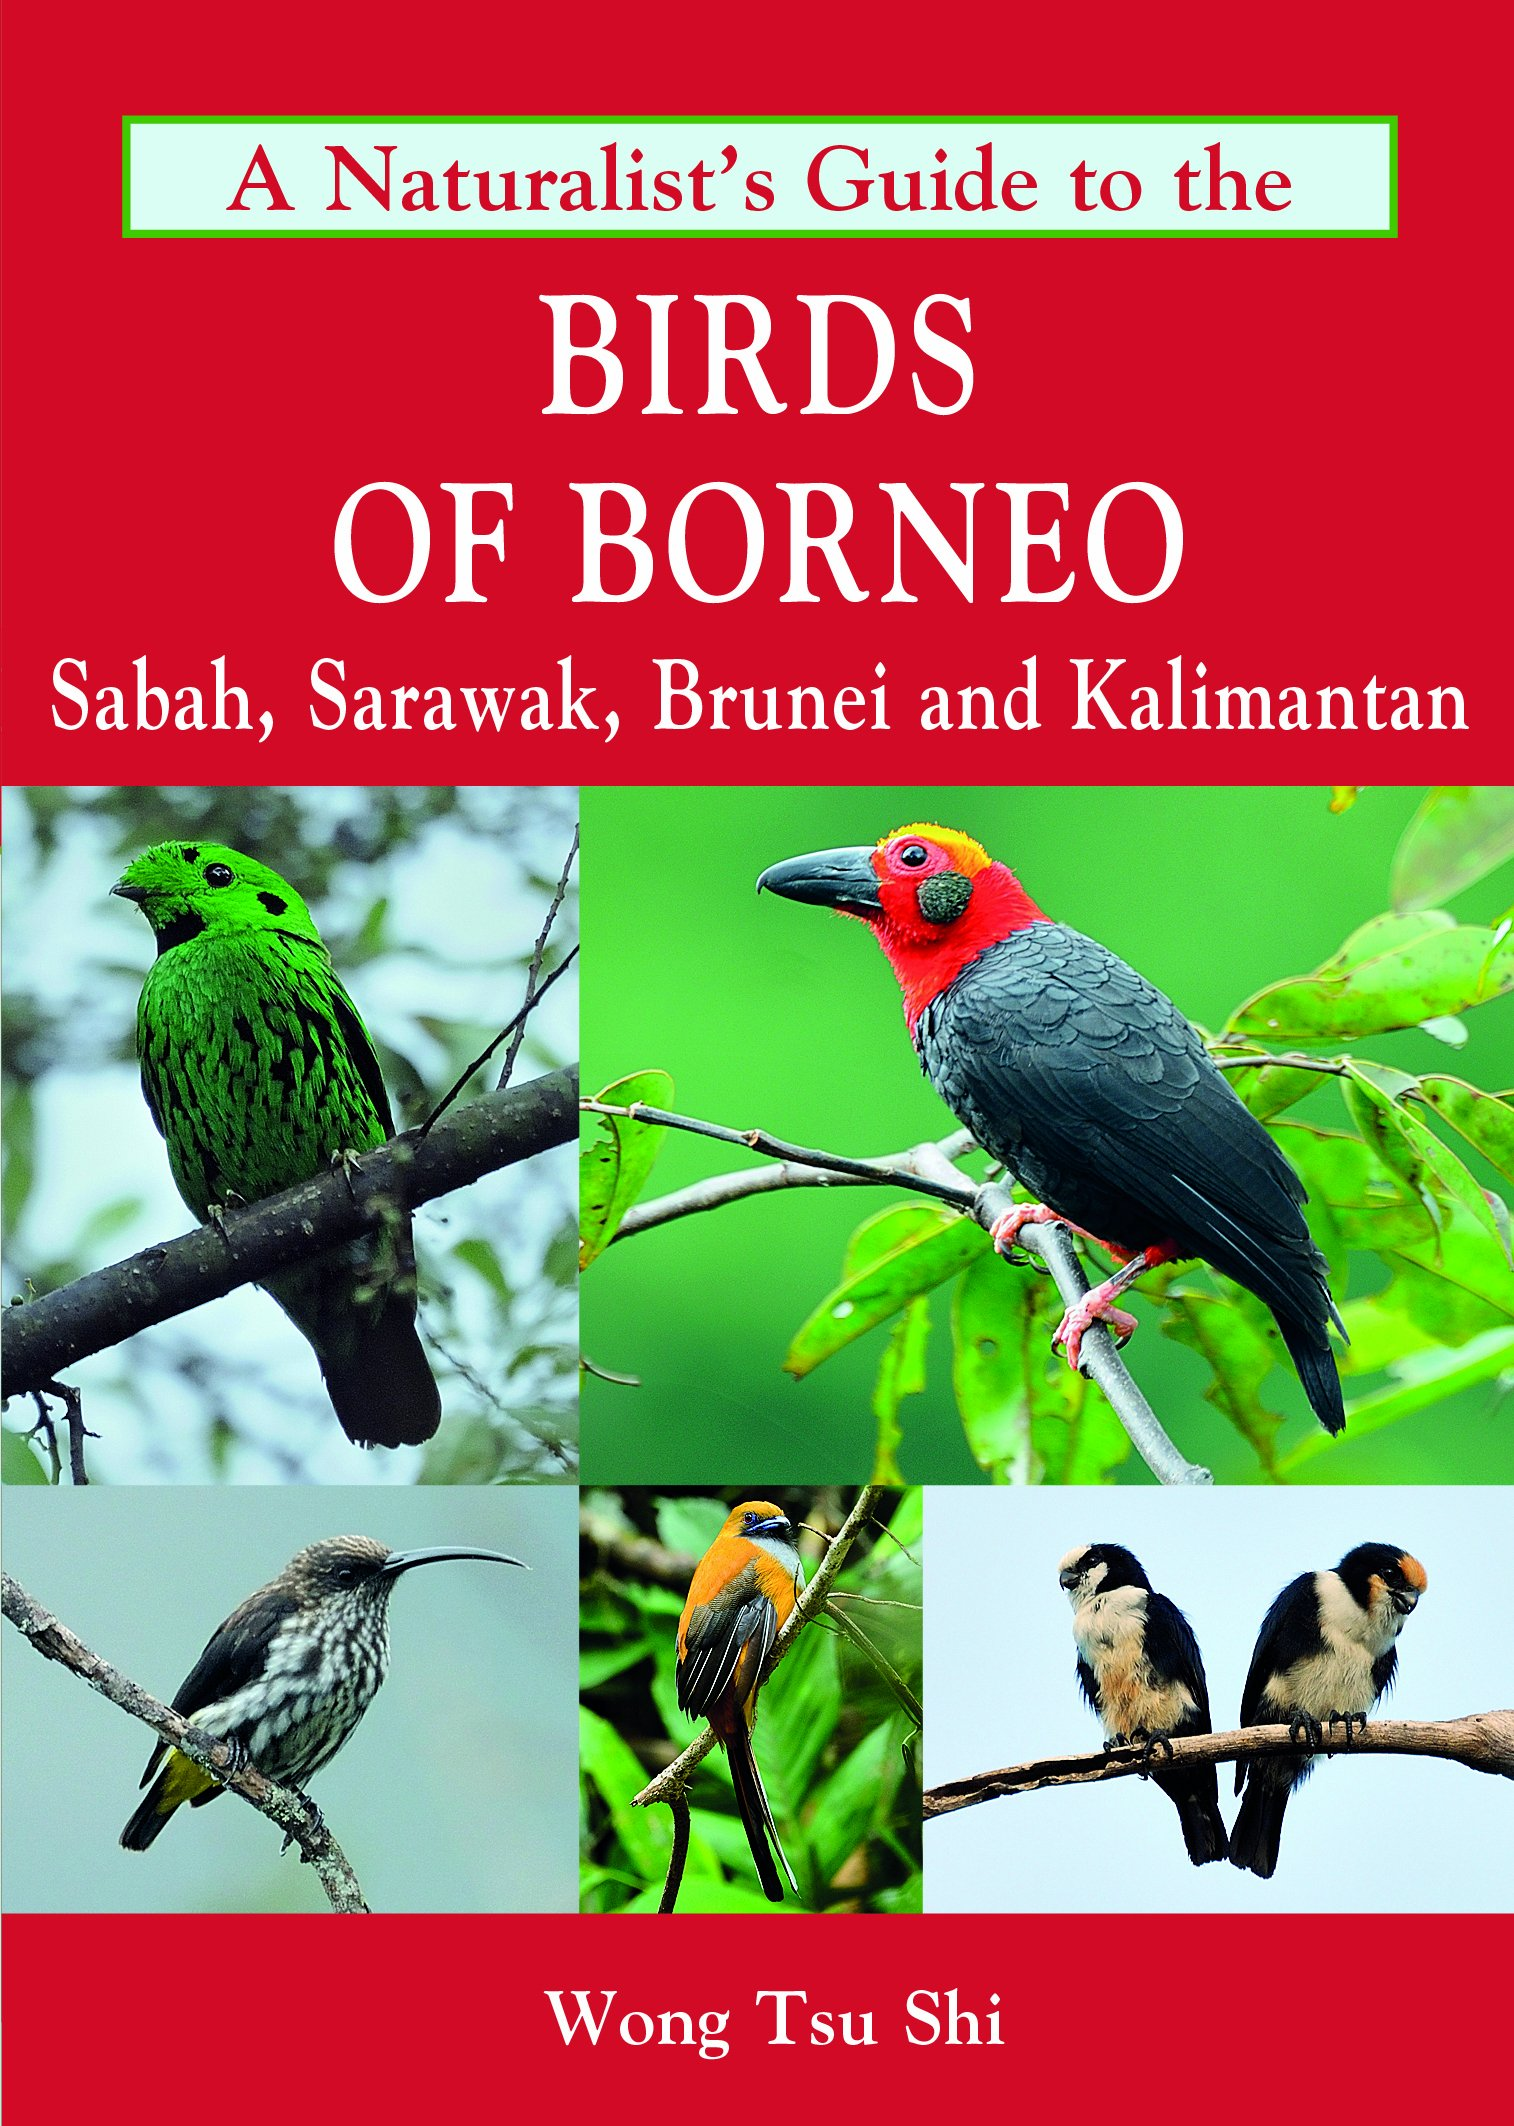 Download A Naturalist's Guide to the Birds of Borneo (Naturalists' Guides) pdf